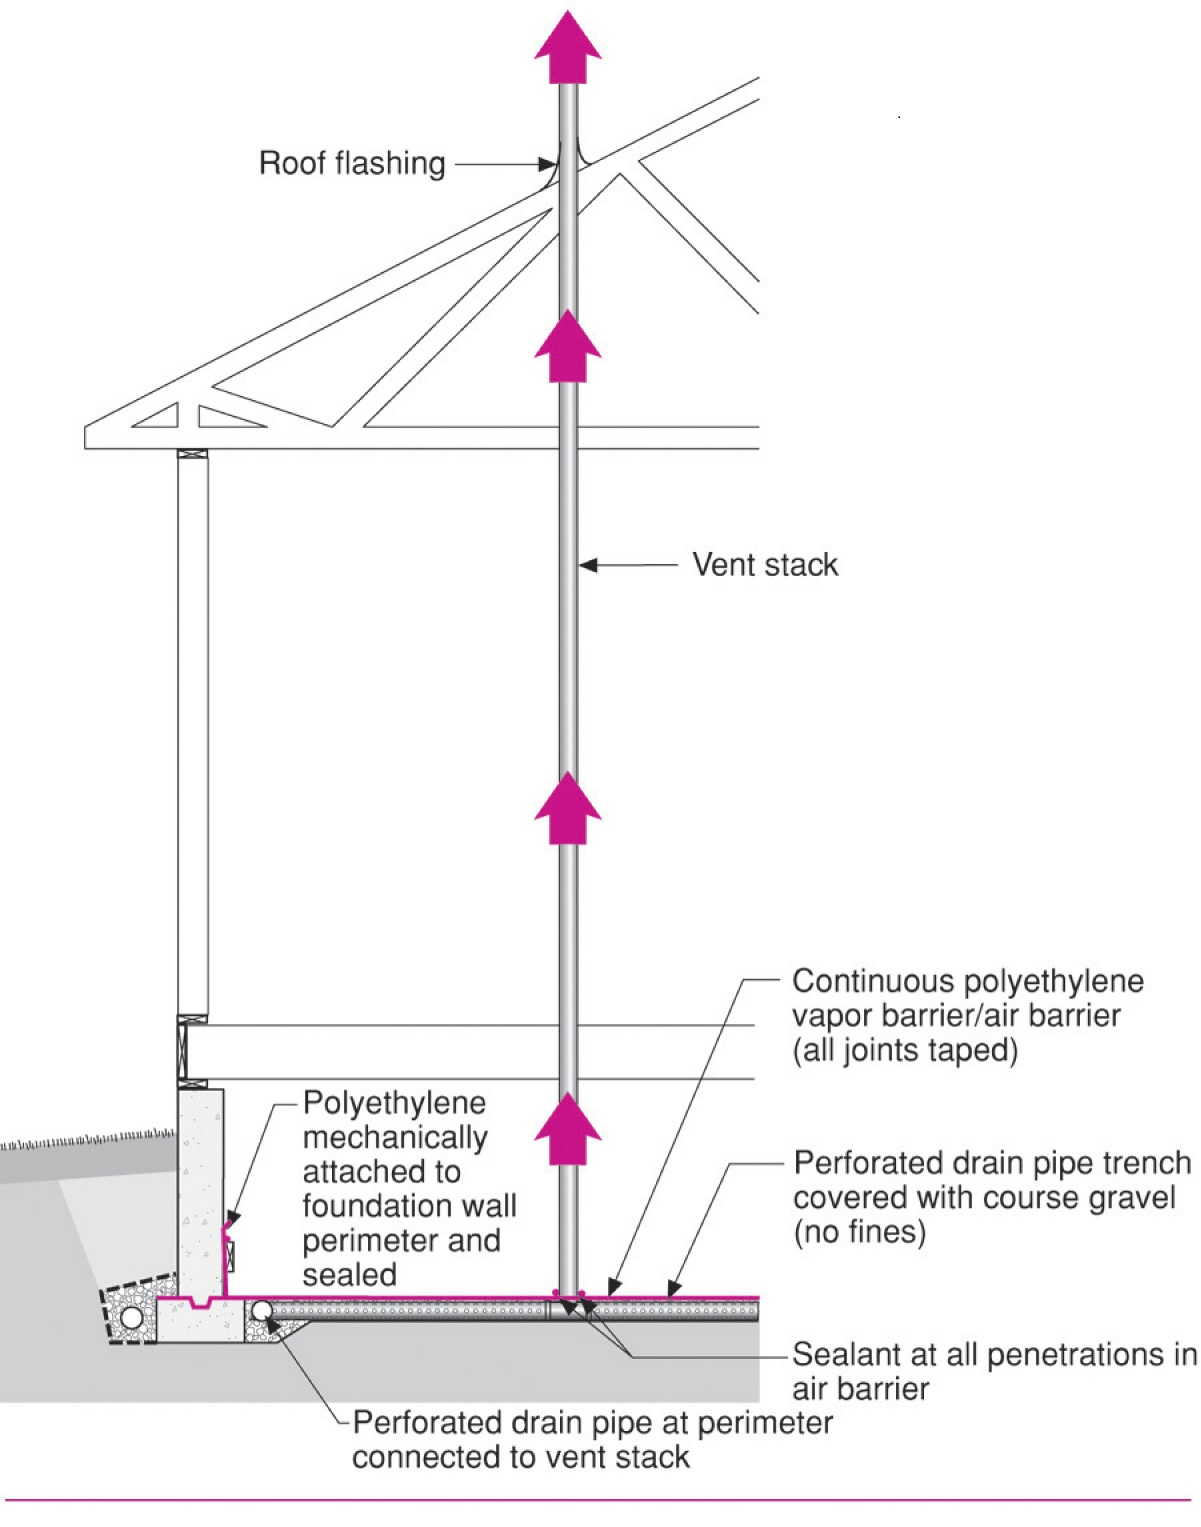 A Radon Control System as Part of a Water-Managed and Air-Sealed Crawlspace for EPA Radon Zones 1, 2, and 3